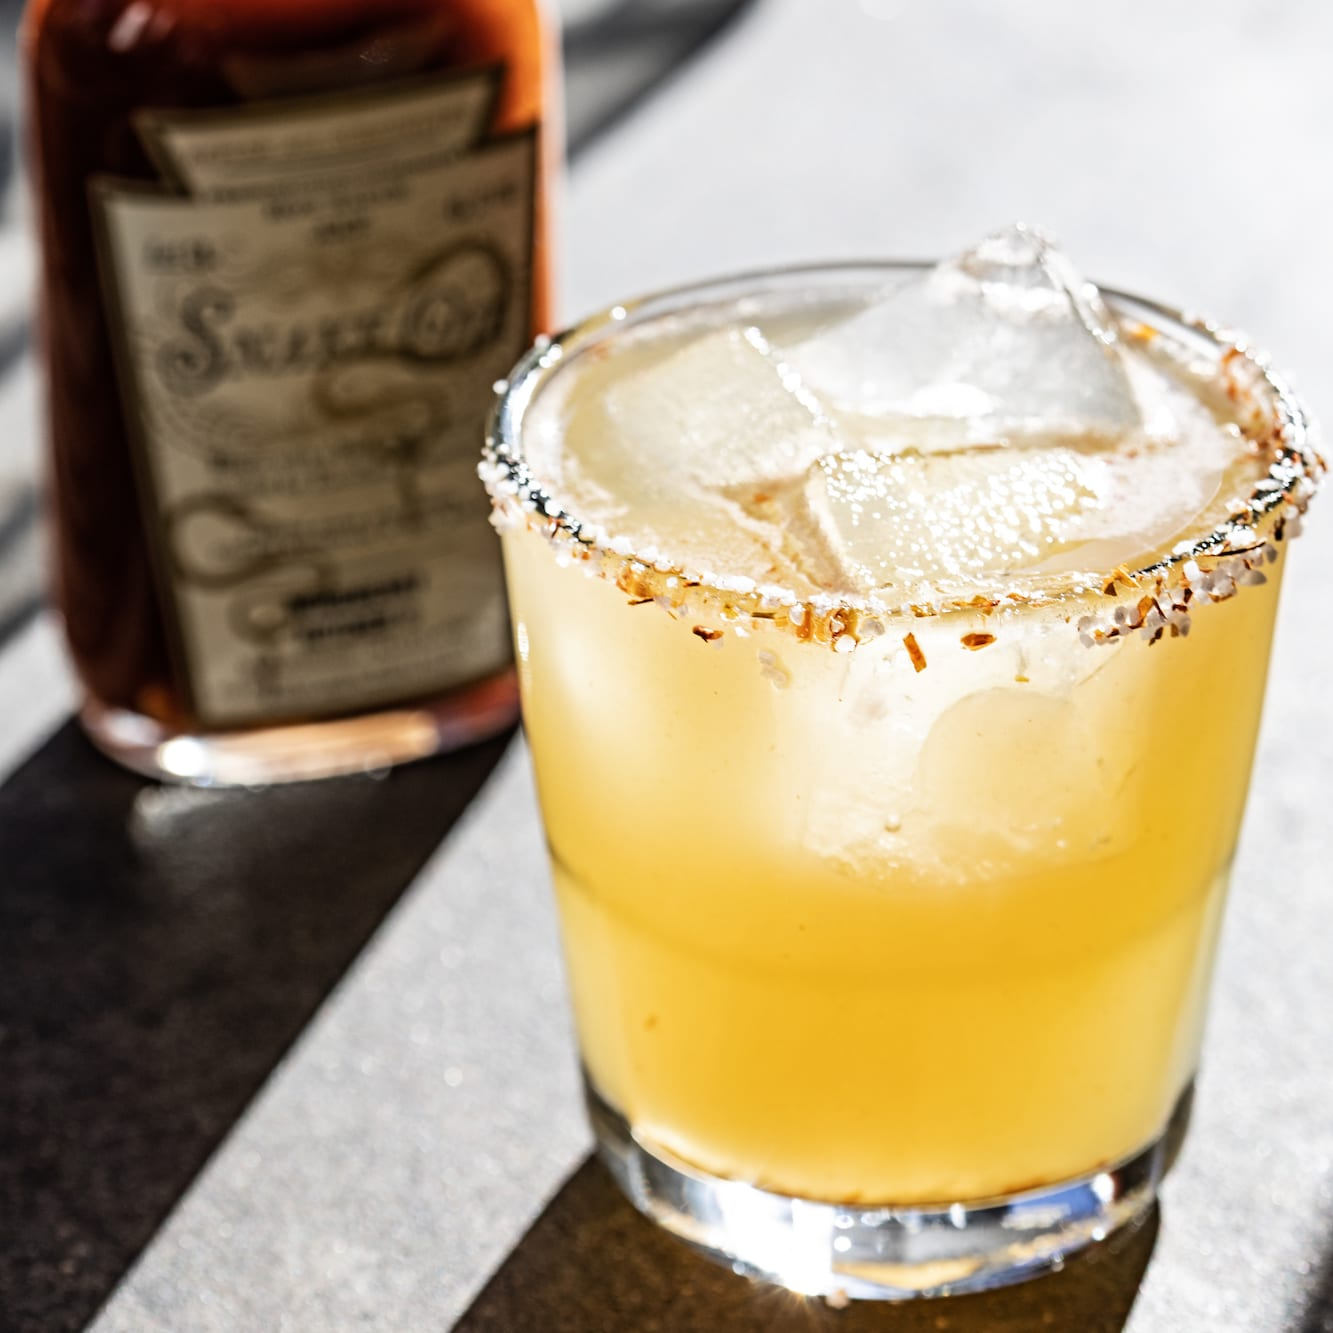 Canningshed's Smoked Apple Brandy Margarita